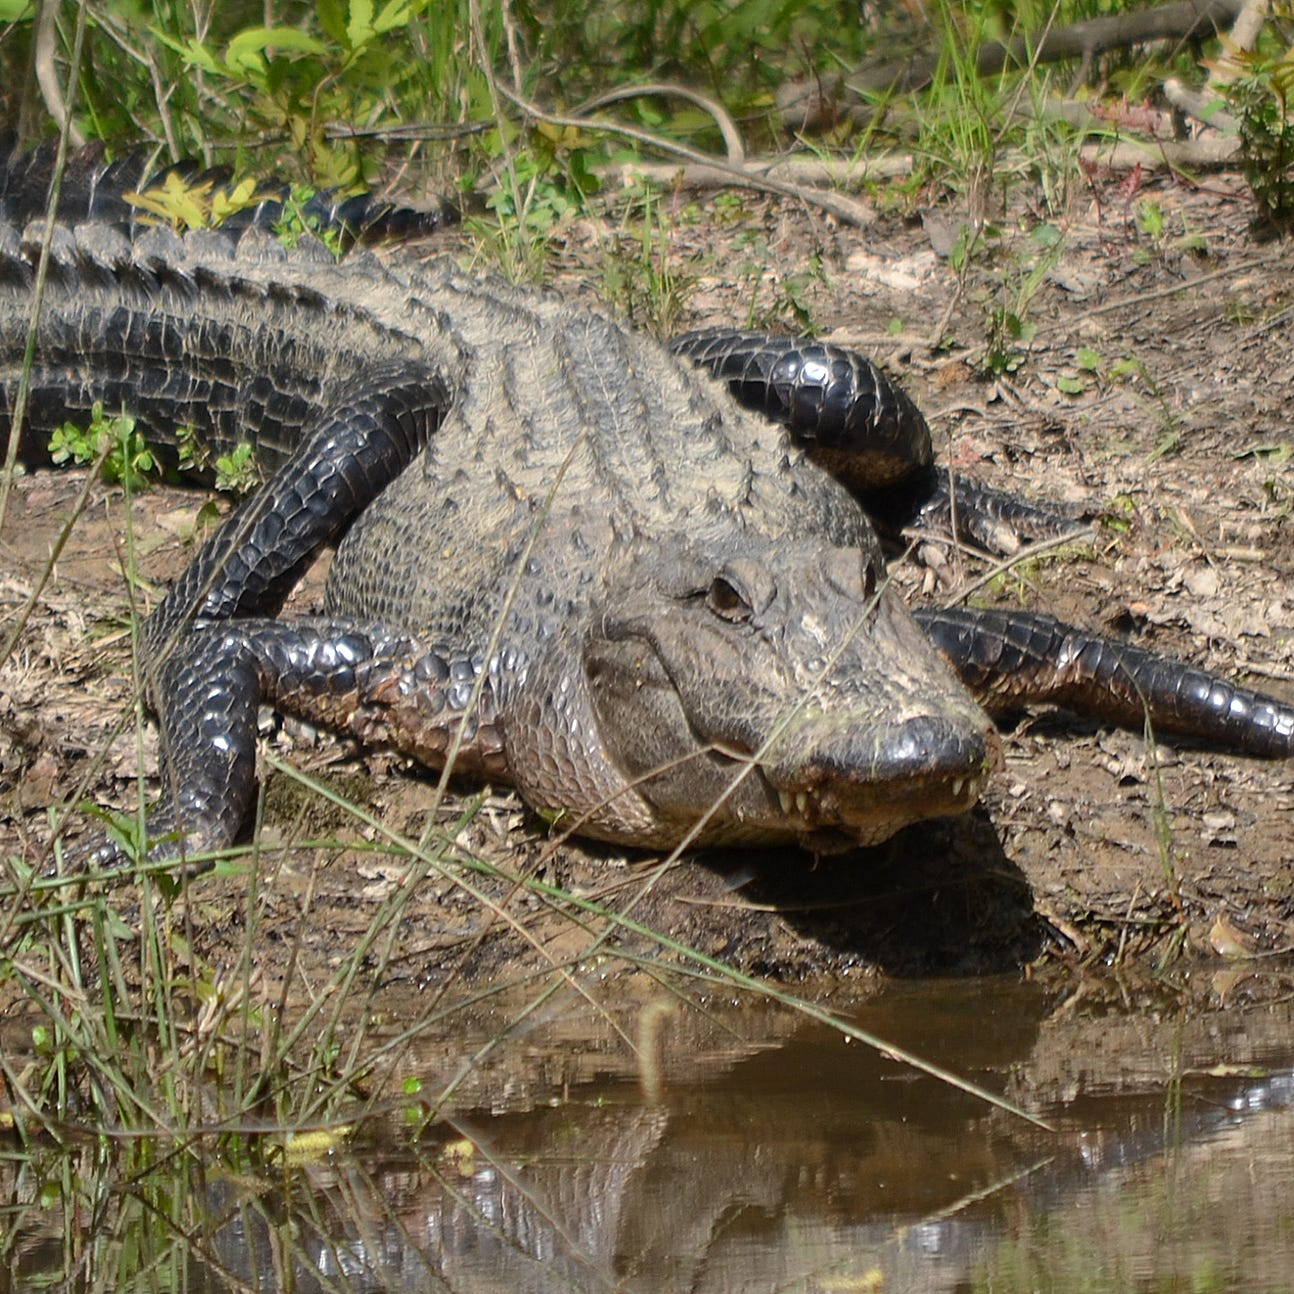 Alligators are becoming more active and people will soon begin to see them in unusual places.